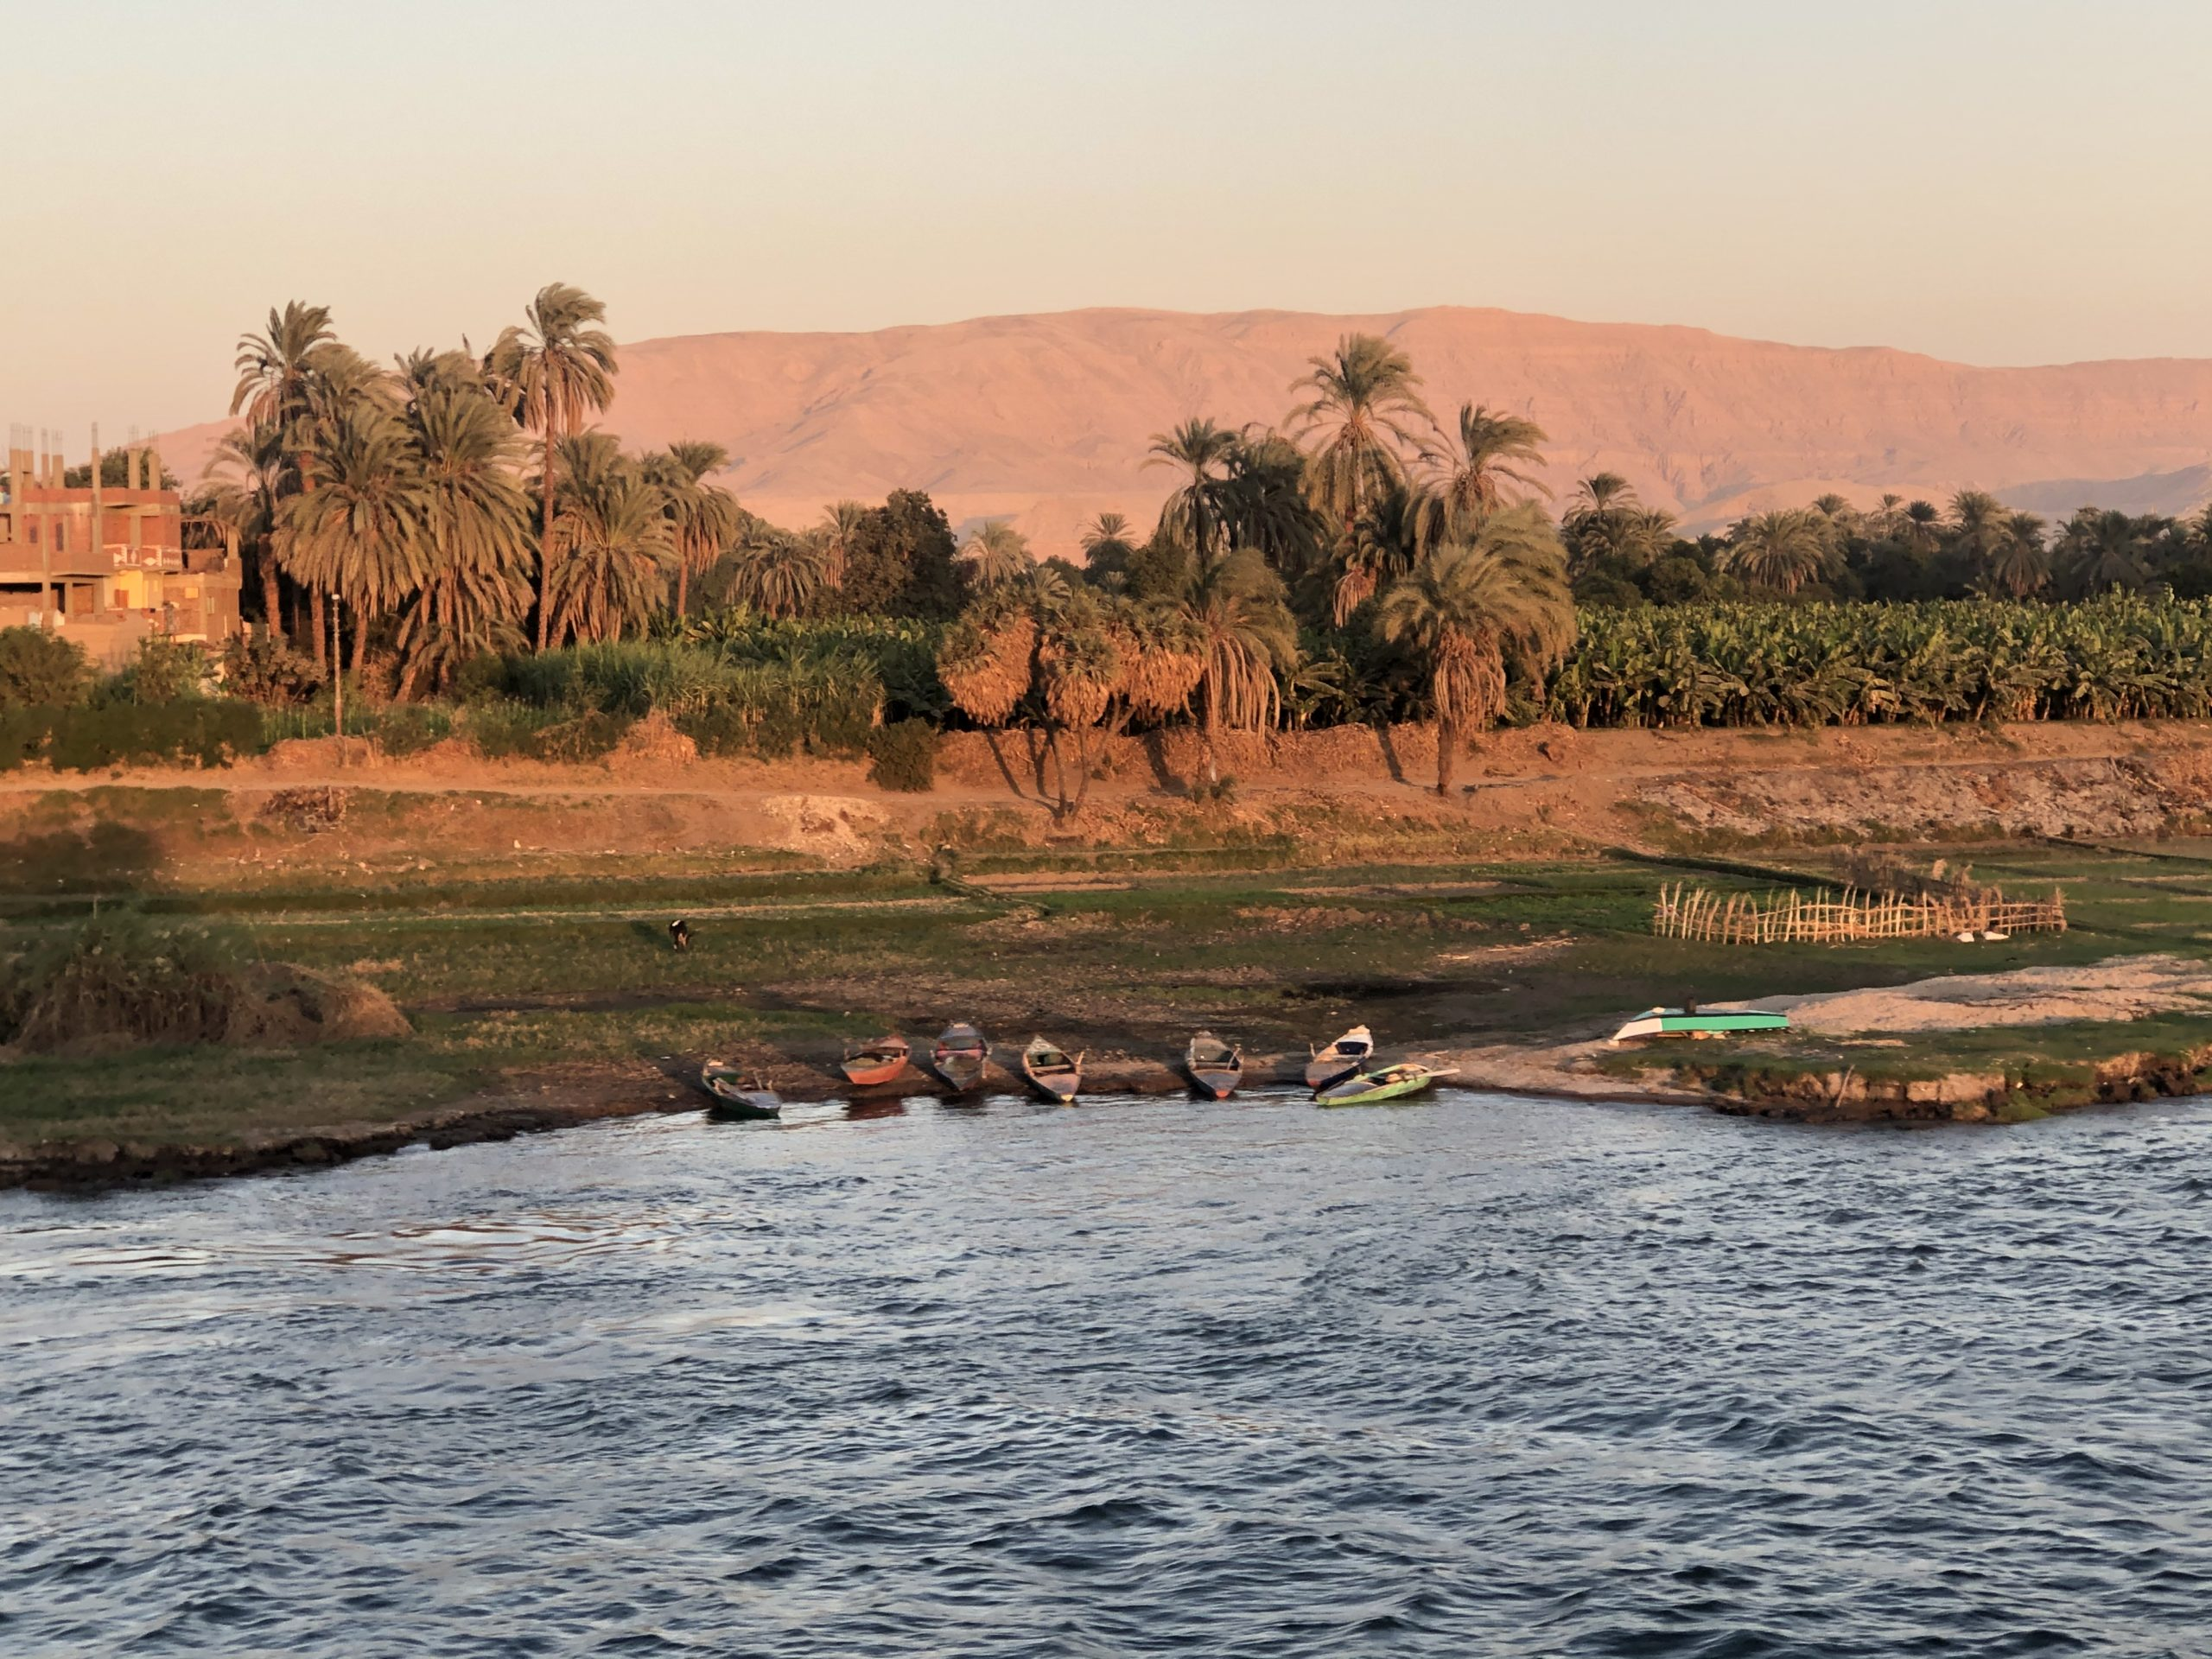 Sunset on the Nile River, Egypt